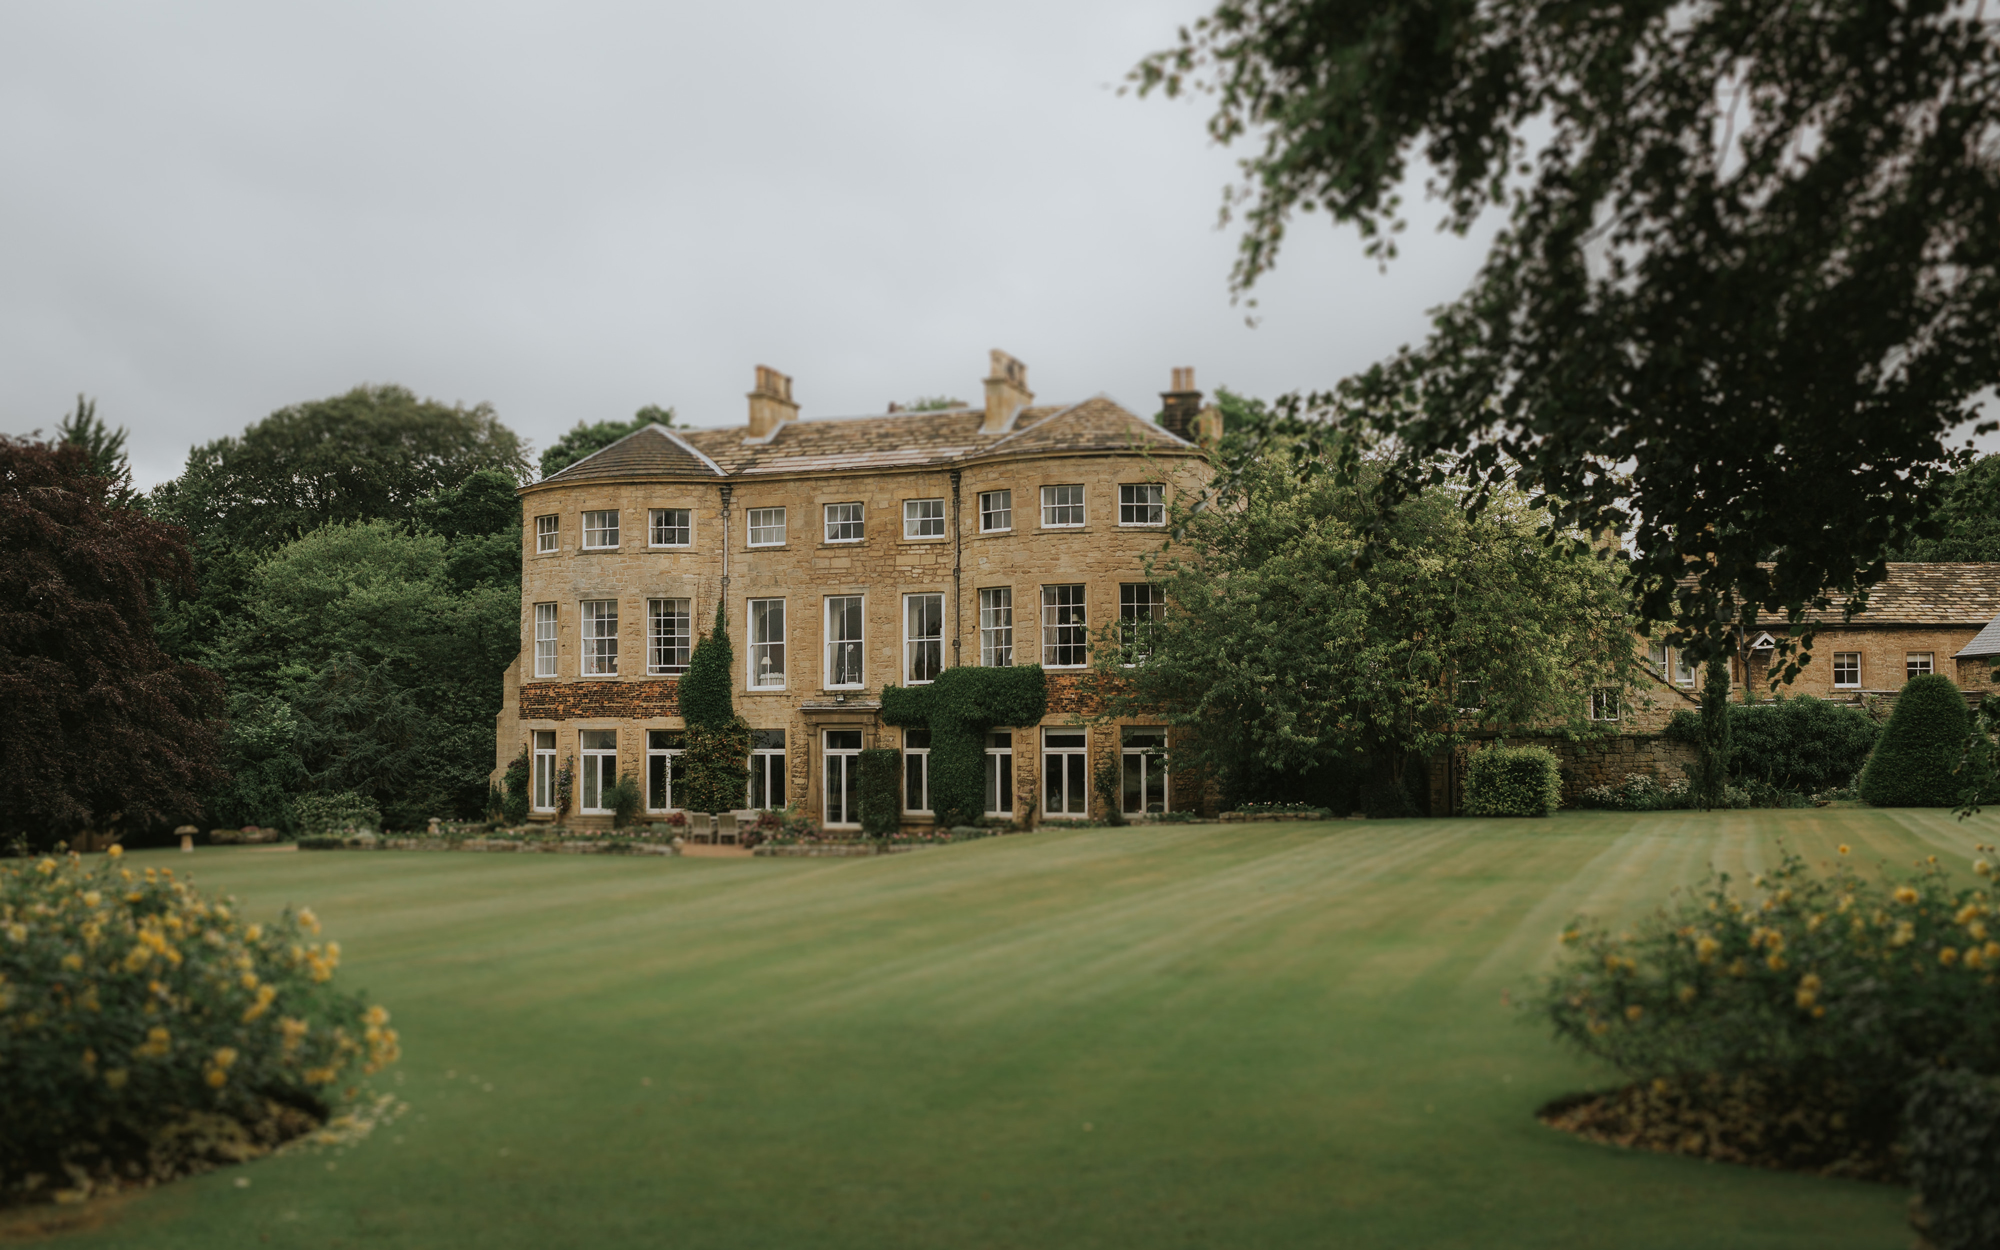 Coco wedding venues slideshow - Wedding Venues in South Yorkshire - Hooton Pagnell Hall